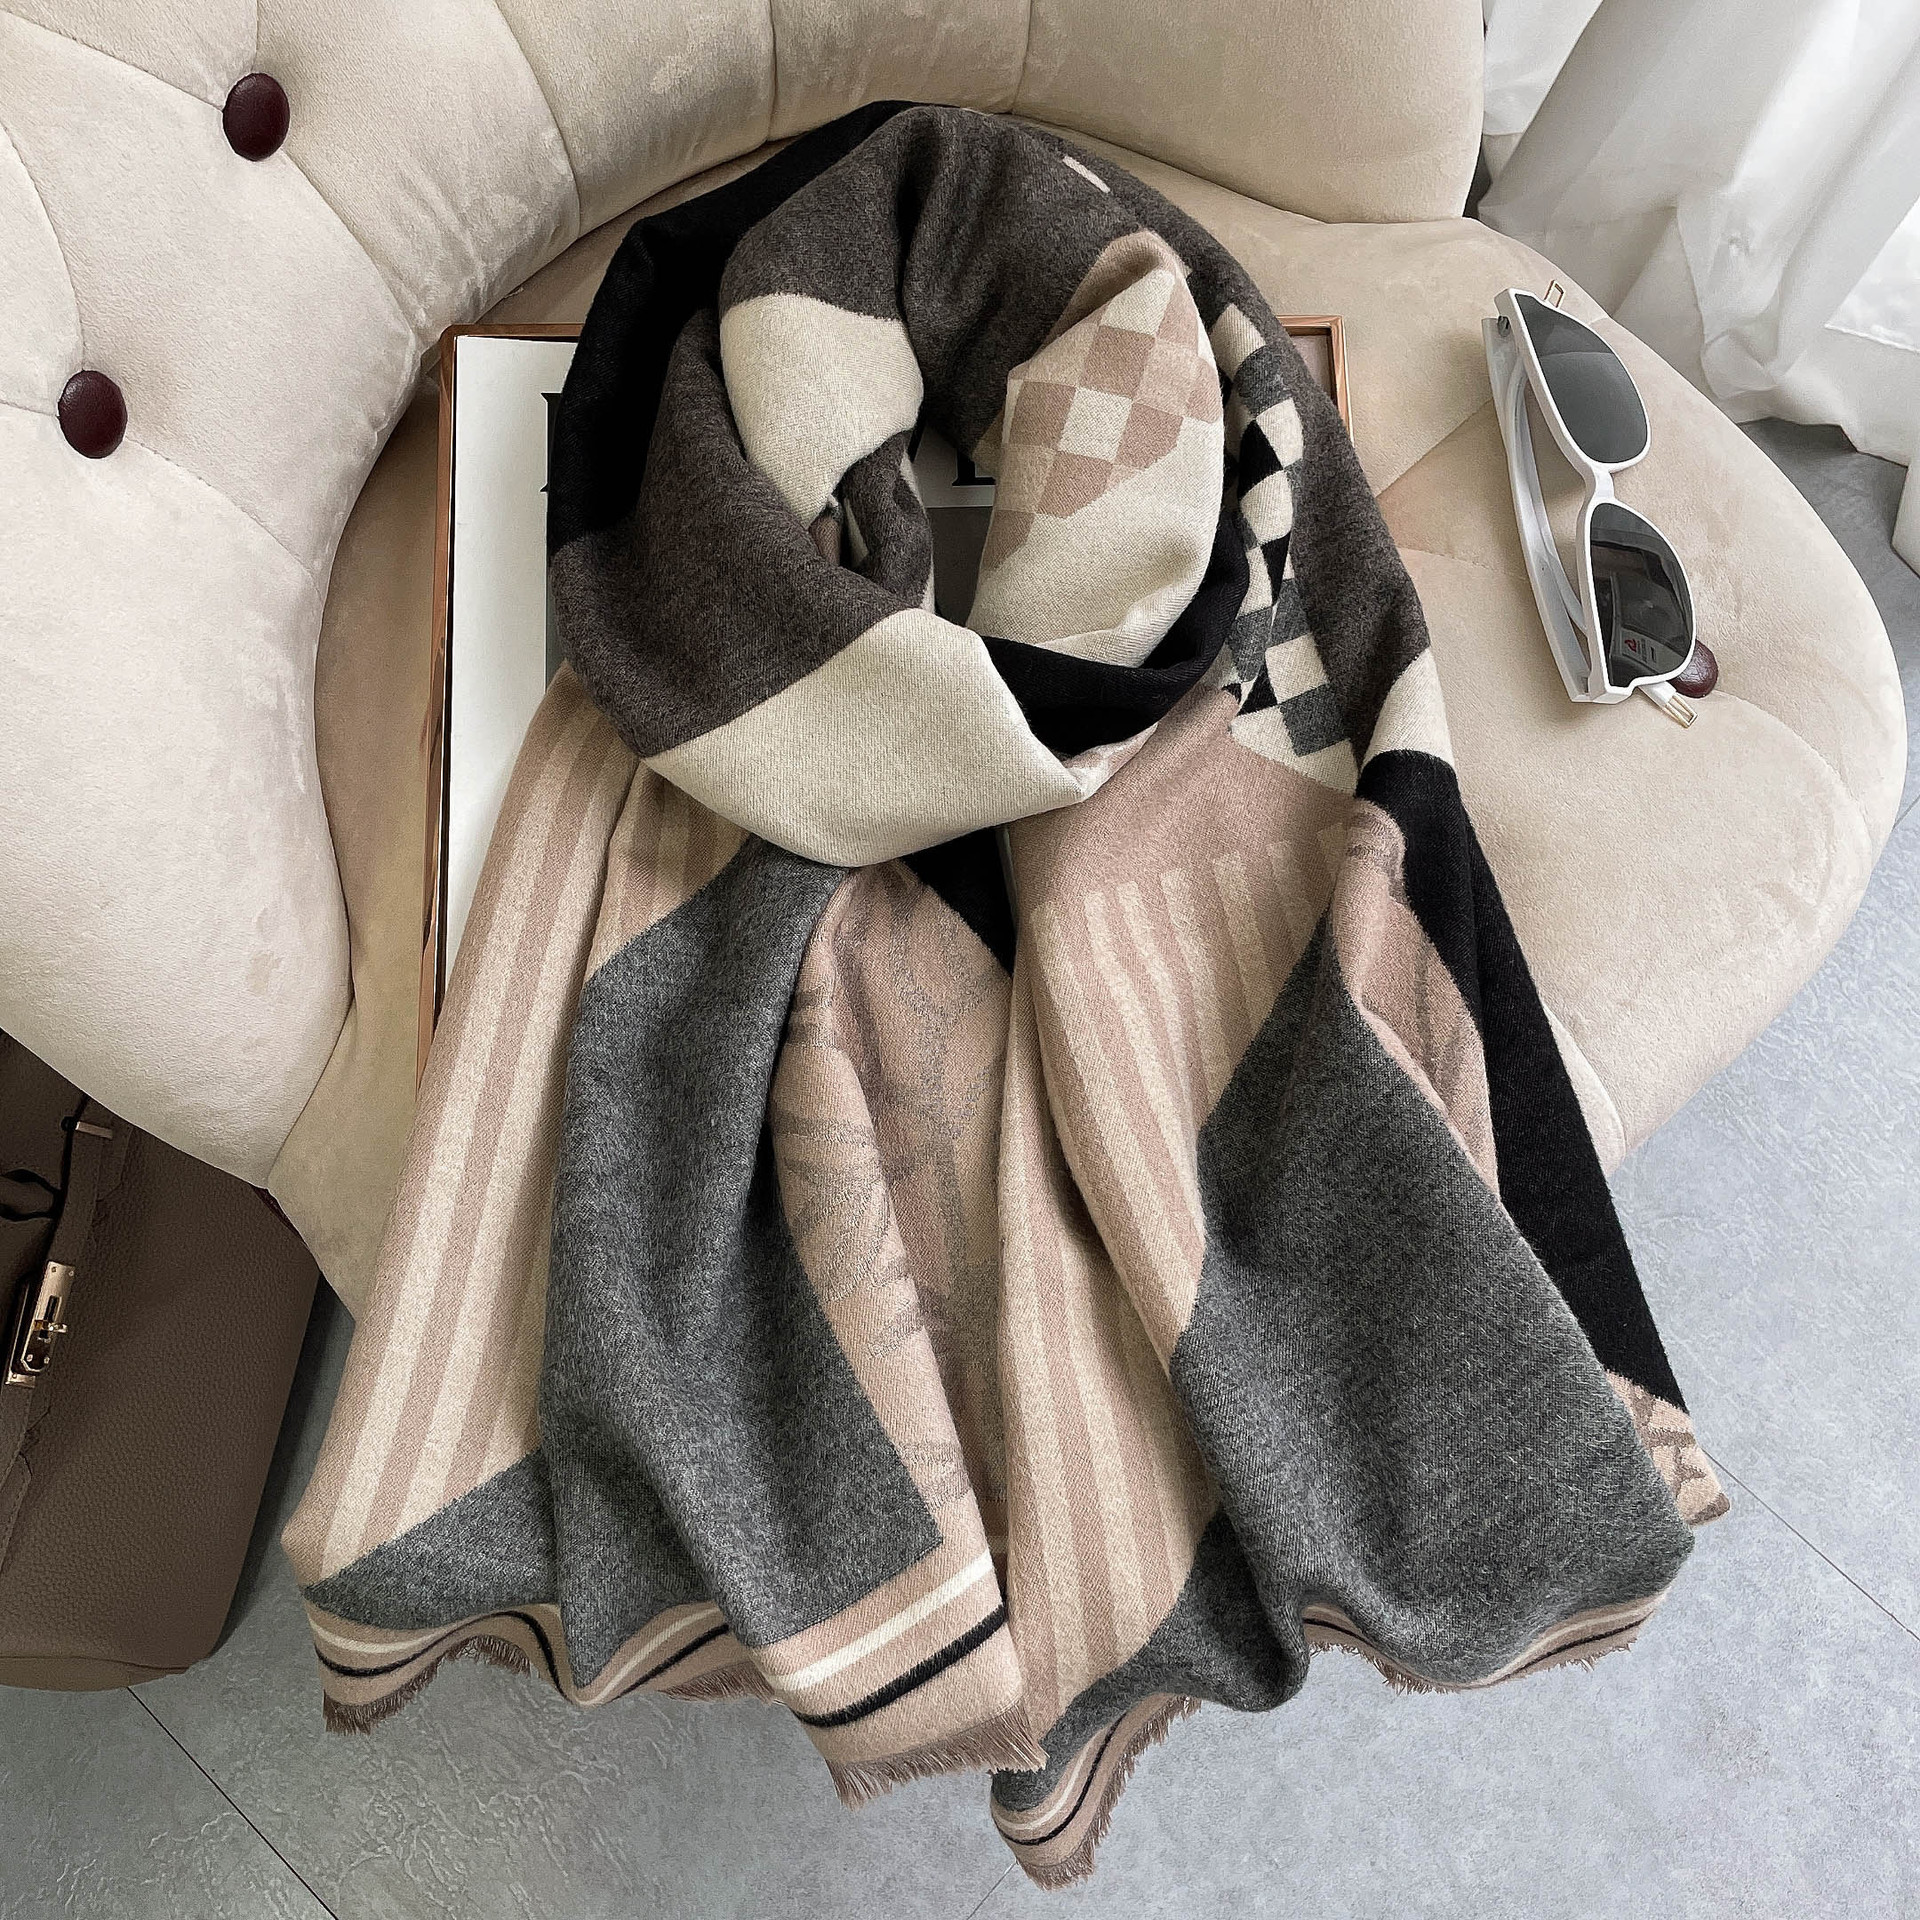 Printed Imitation Cashmere Scarf for Upcoming Winter Season